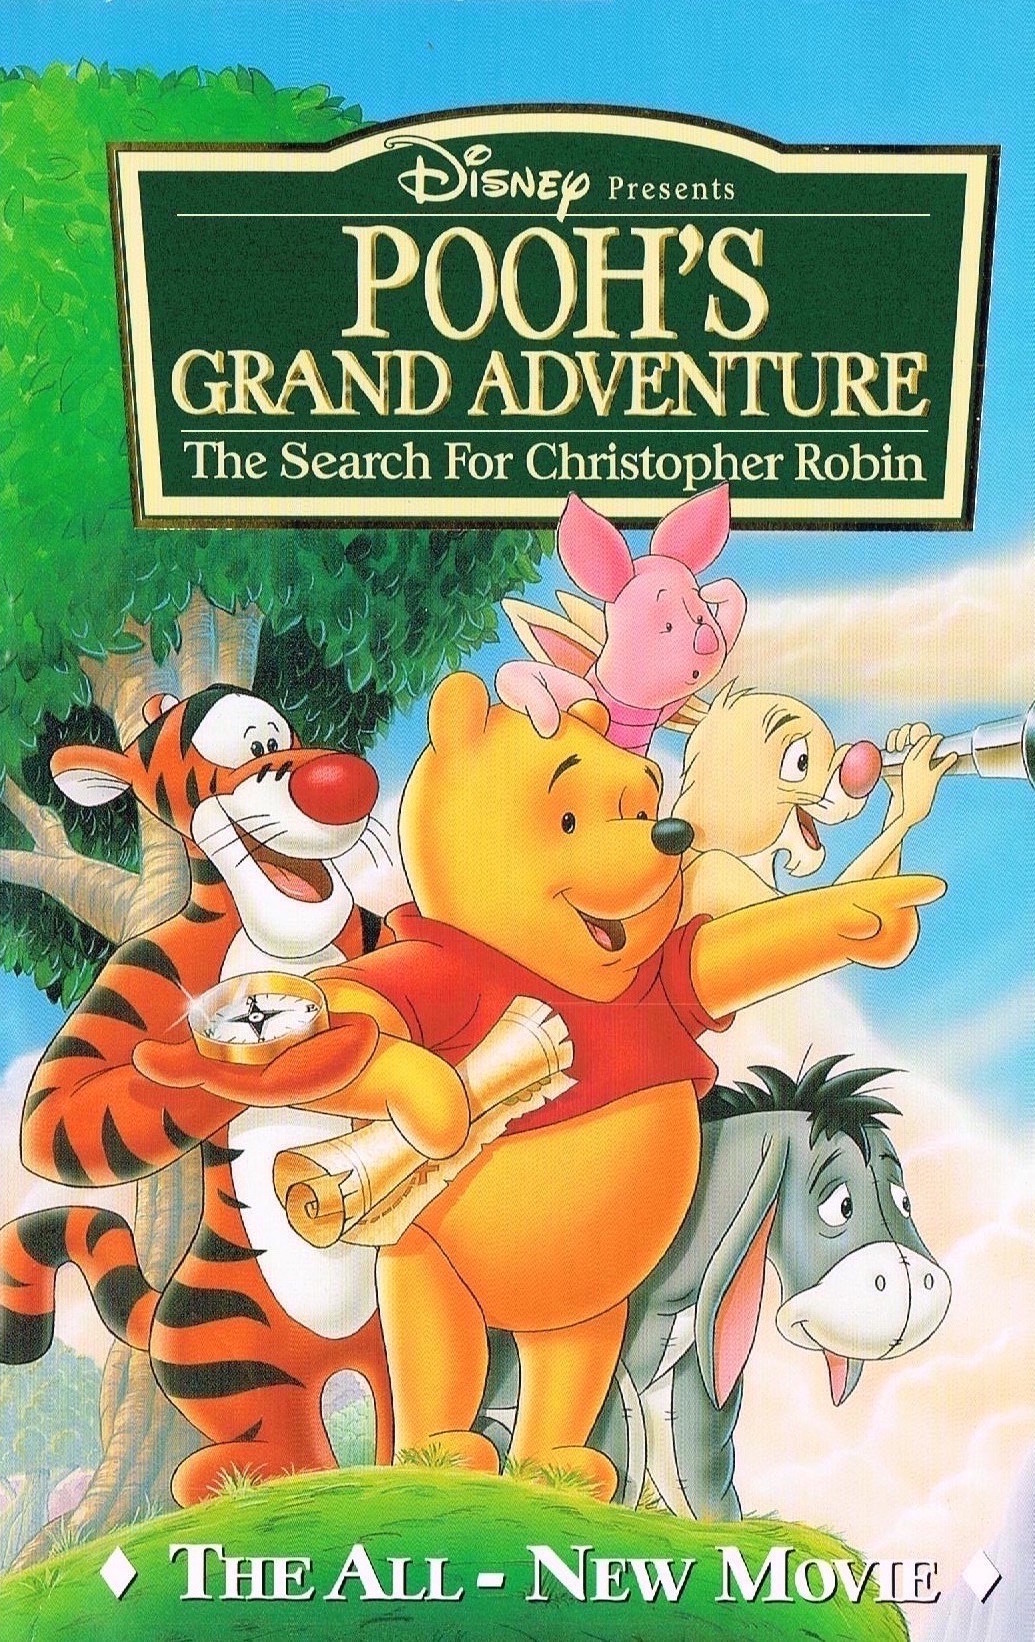 Pooh's Grand Adventure: The Search for Christopher Robin (video)